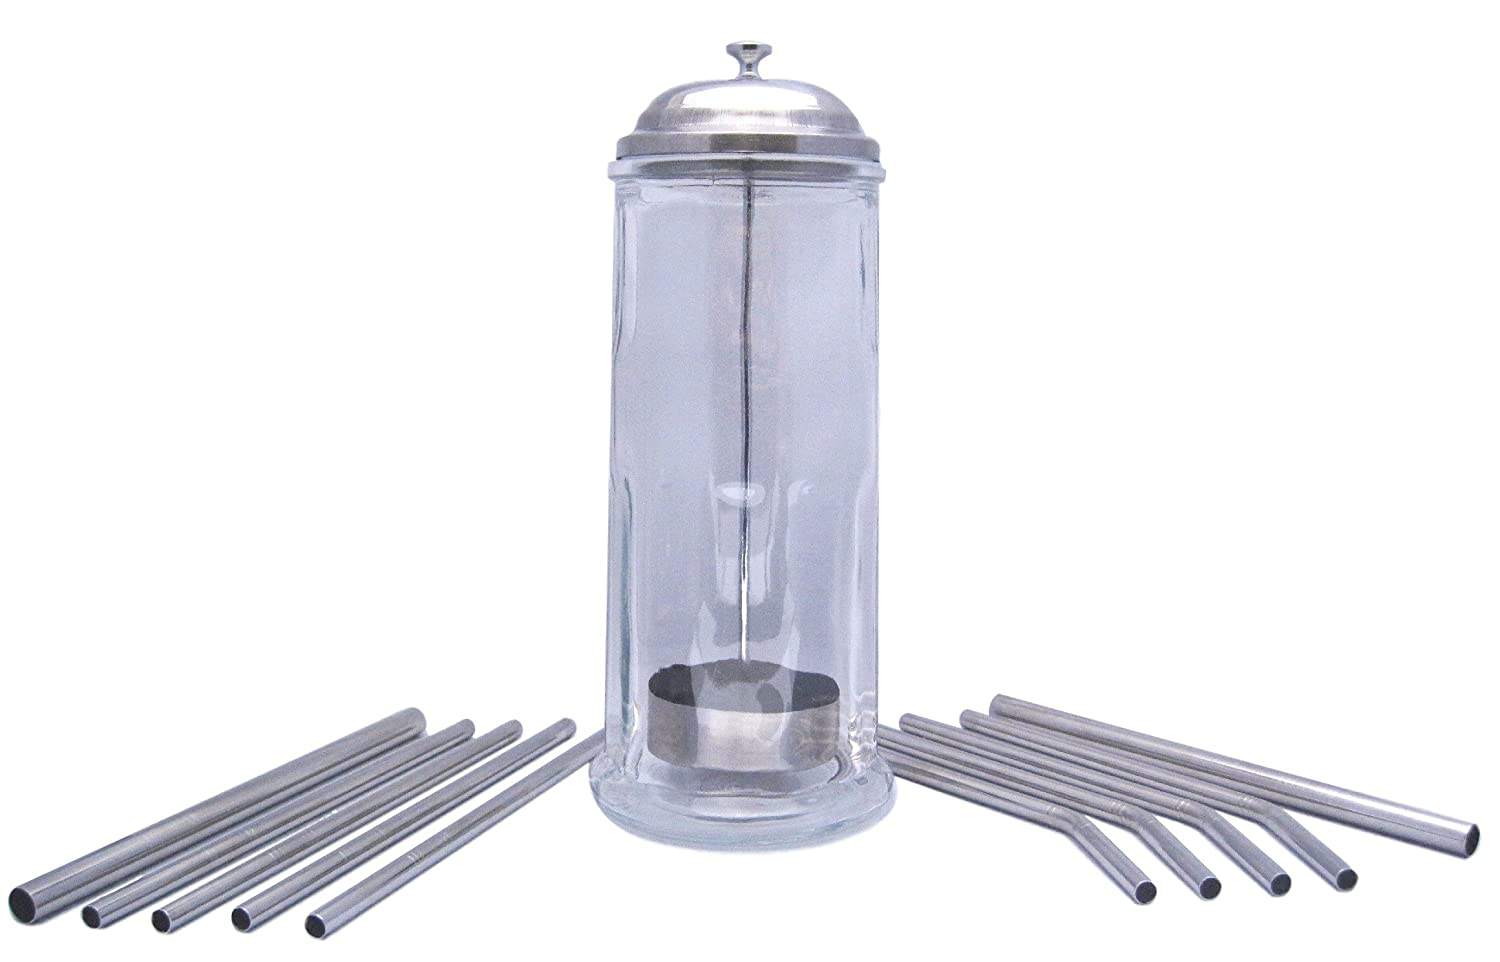 Glass Straw Holder WITH Stainless Steel Straws by plumwood & vine (Stainless Steel, 10 straw set) COMINHKPR141793